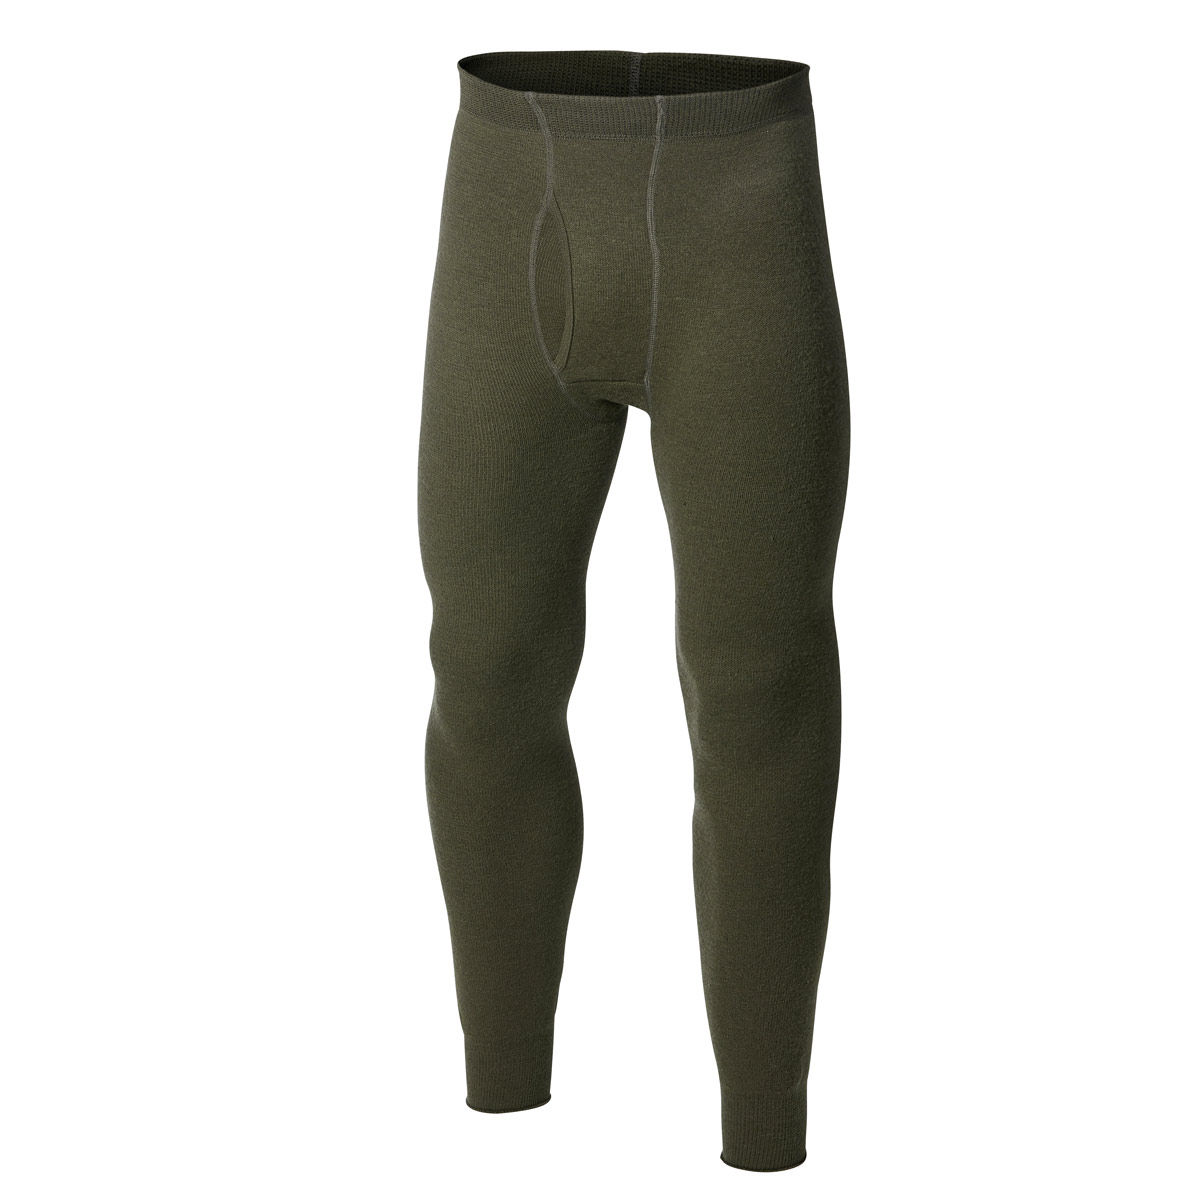 Woolpower Ullfrotte Original Long Johns with Fly - 200g - Green